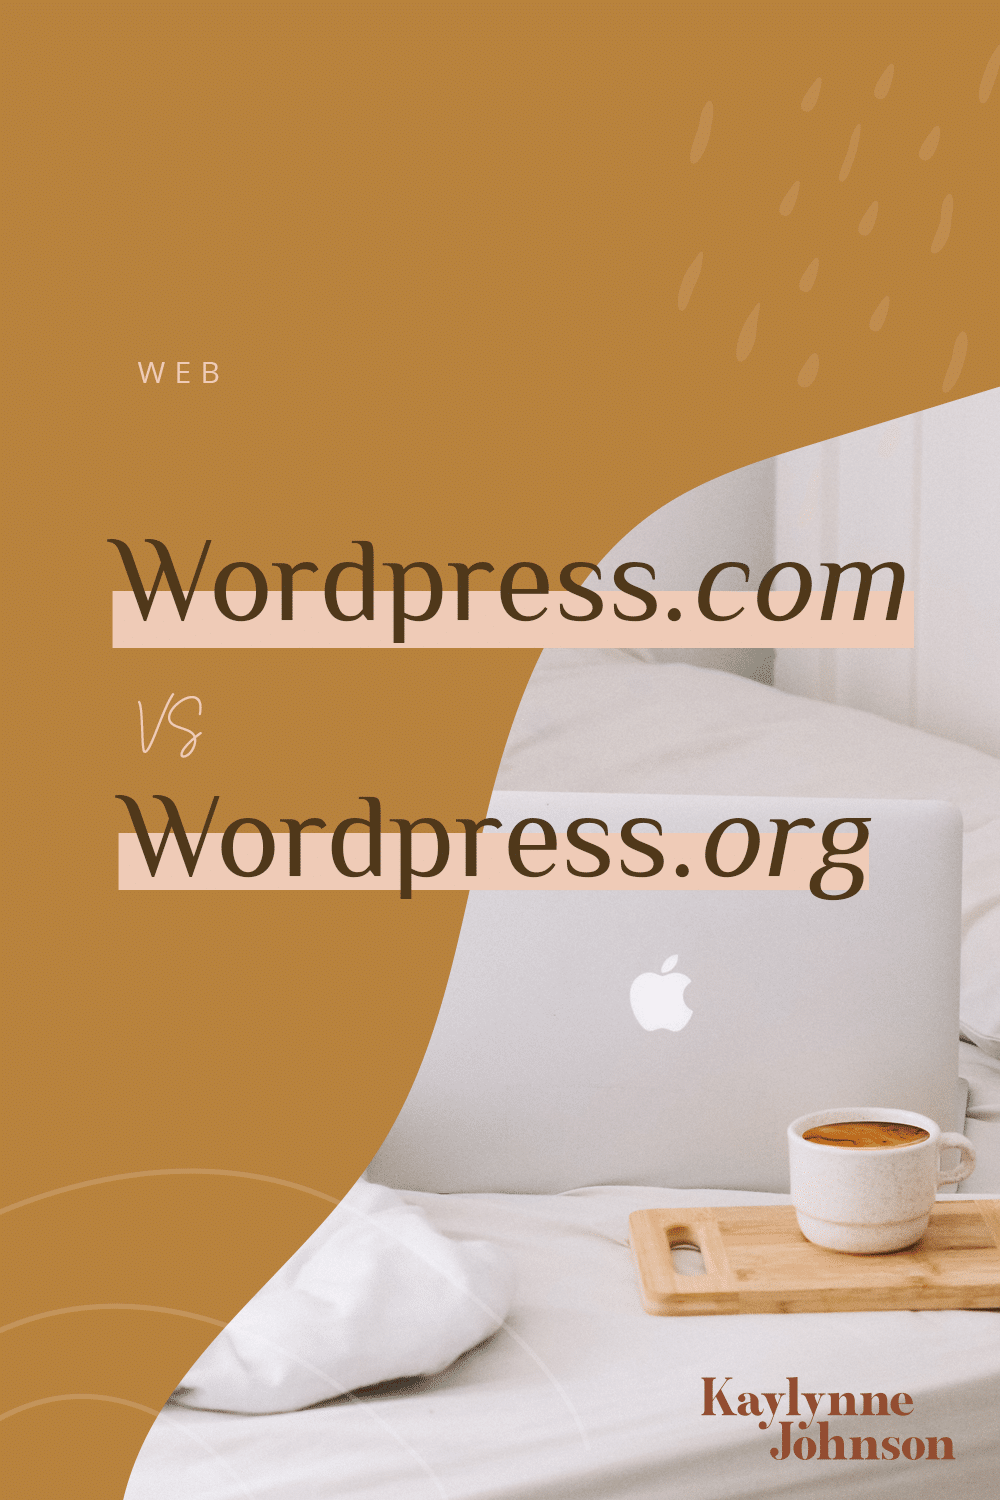 WordPress.com VS WordPress.org: lequel choisir? - Kaylynne Johnson